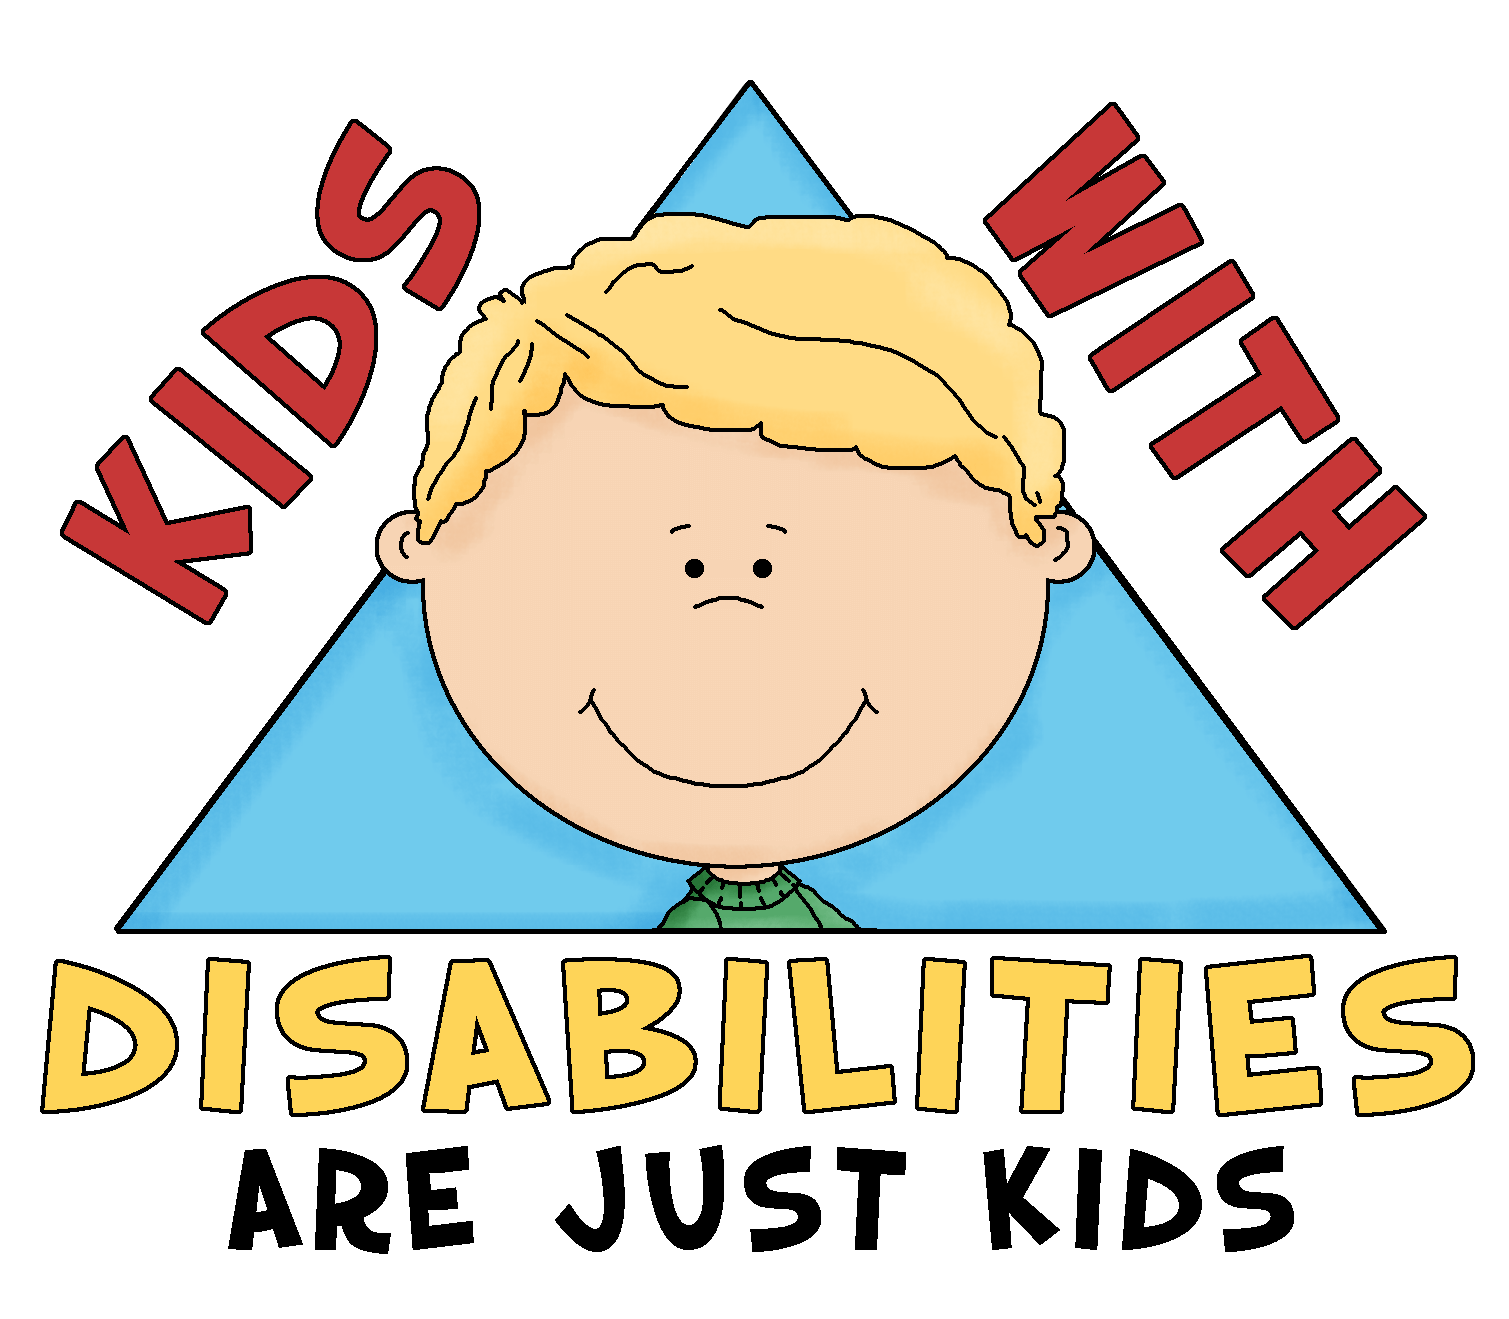 Free Disabled Student Cliparts, Download Free Clip Art, Free Clip.